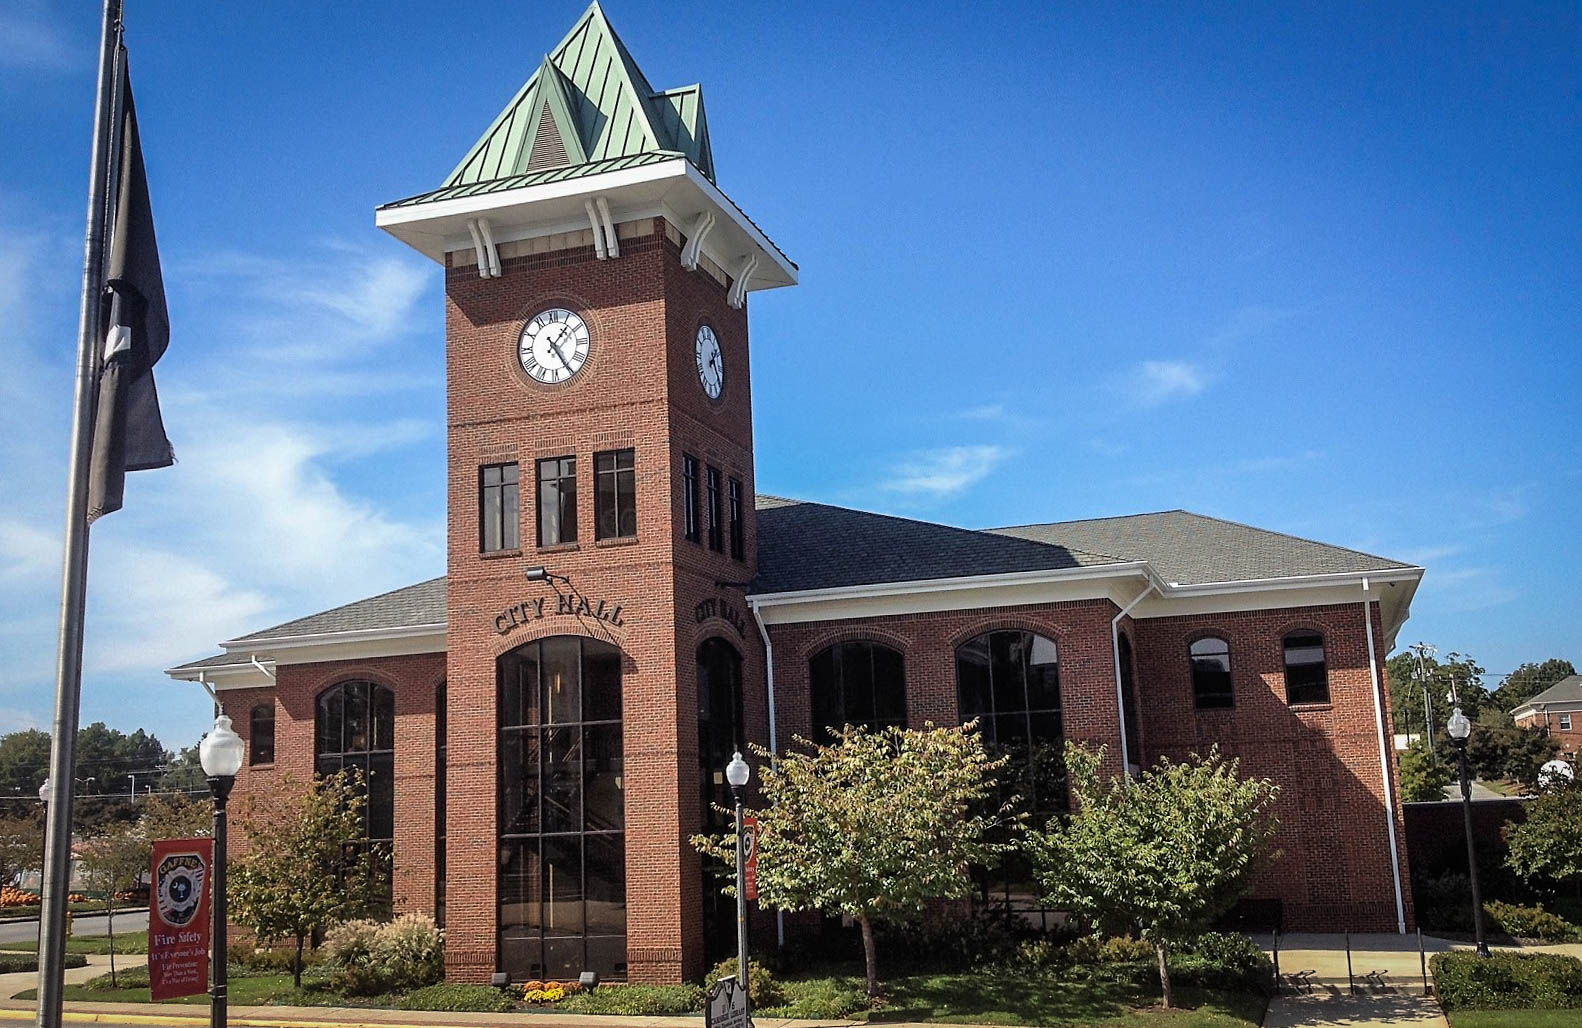 21,000 SF City Hall project in Gaffney, SC